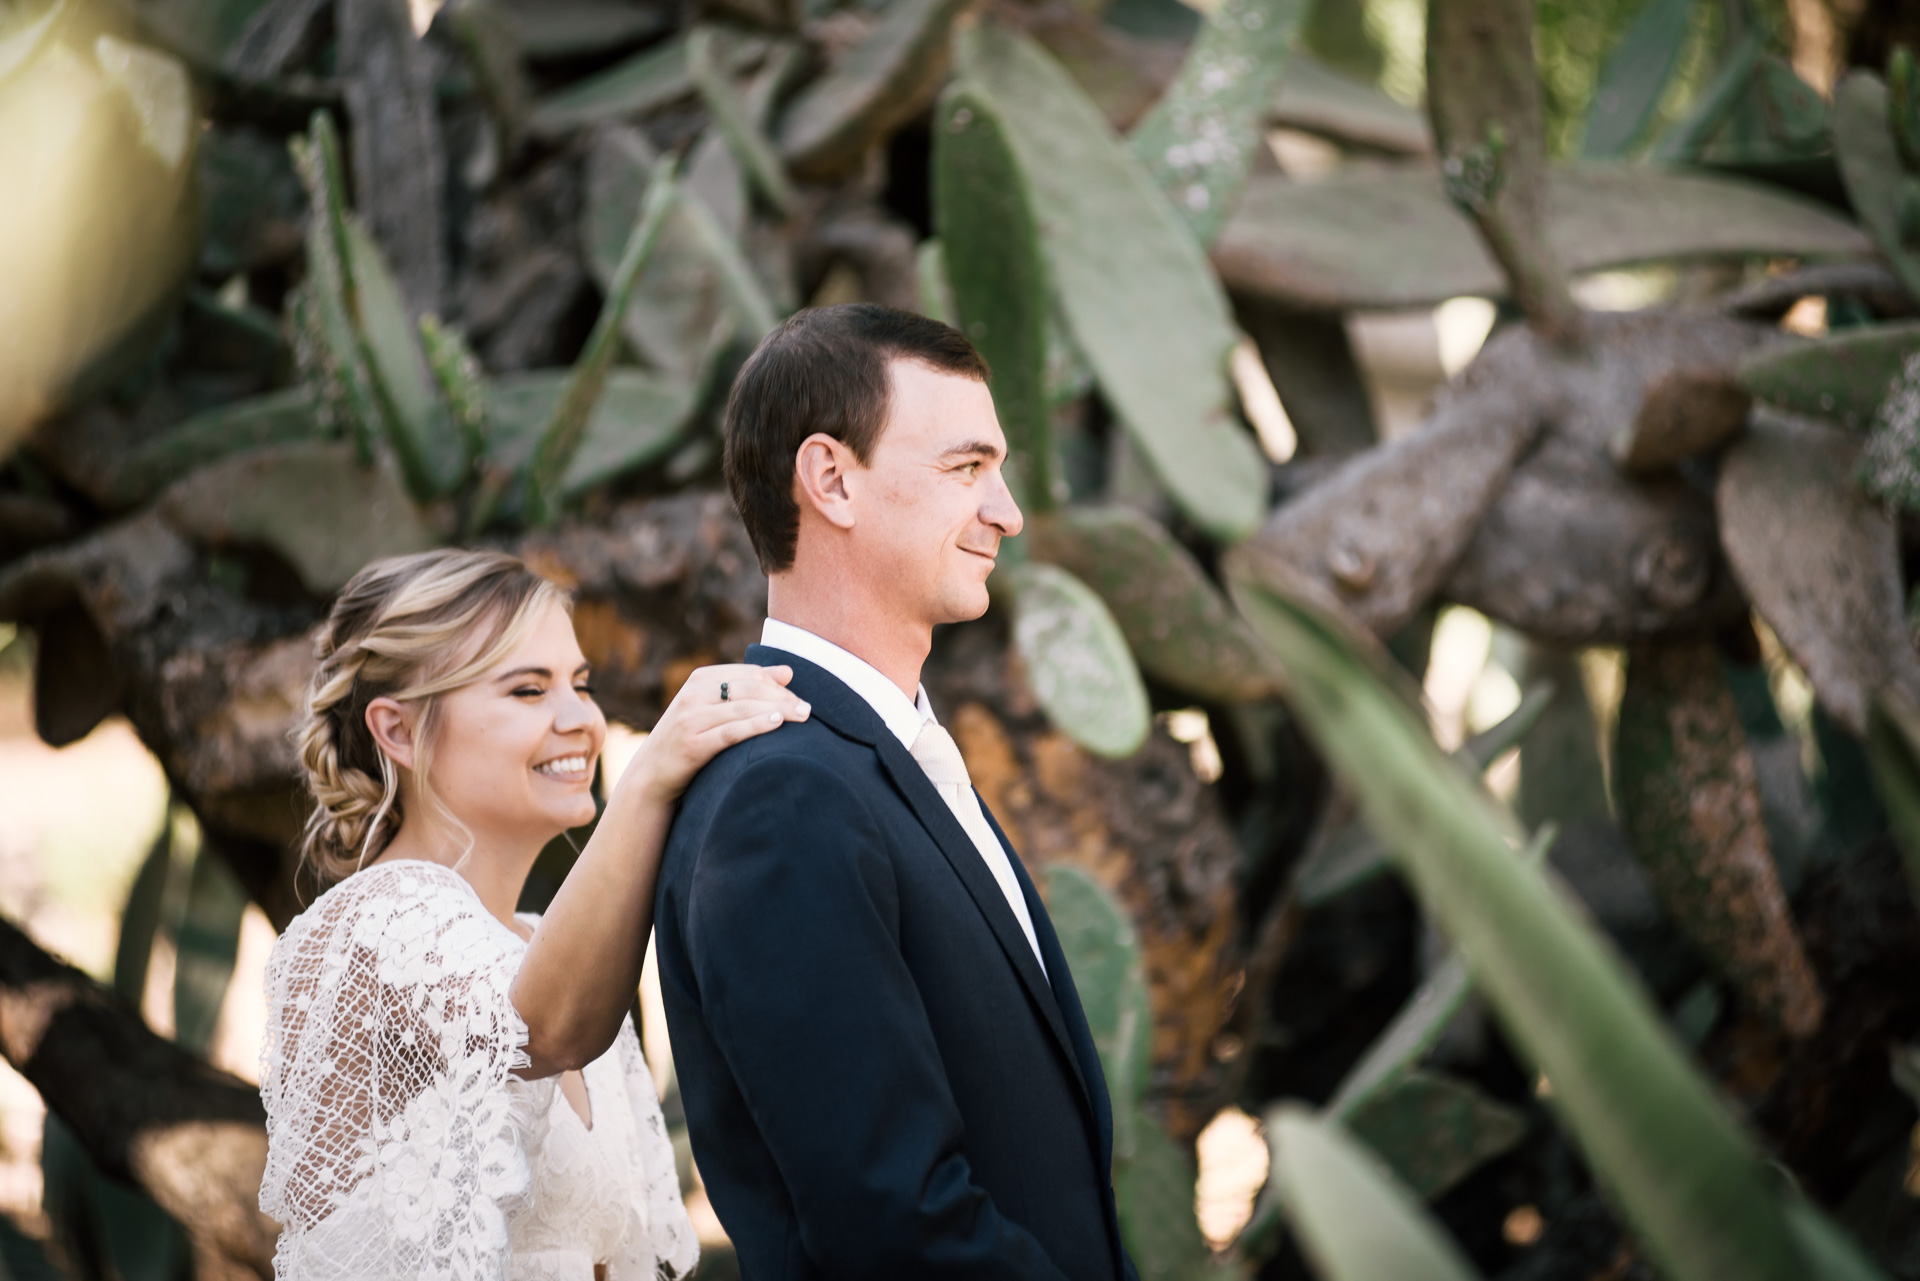 bride and groom are all smiles as they prepare to see each other for the first look captured by photographer during romantic wedding at the historic Leo Carrillo Ranch in Carlsbad California